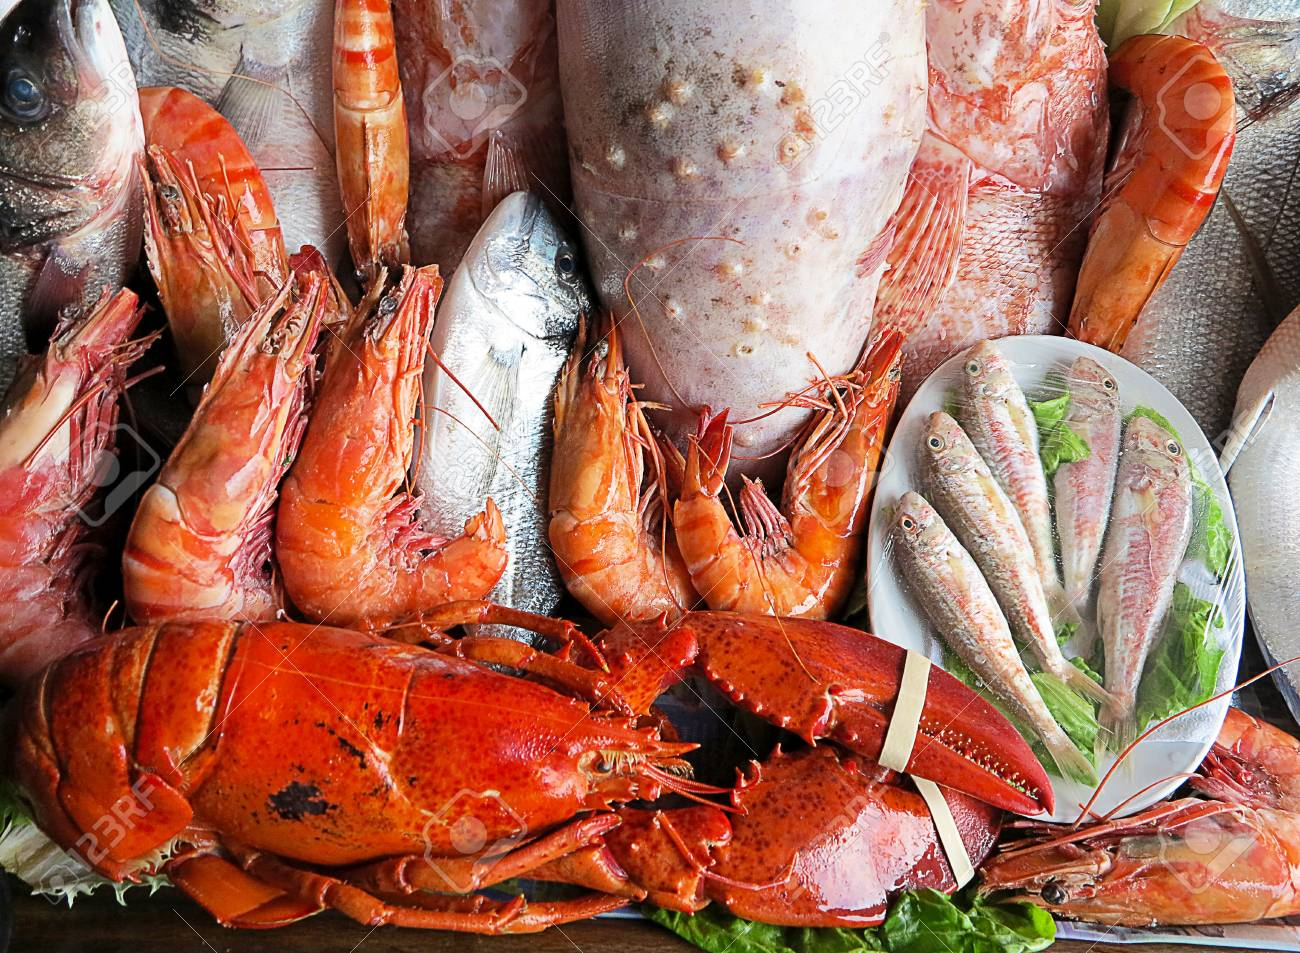 Image result for seafood delicacies